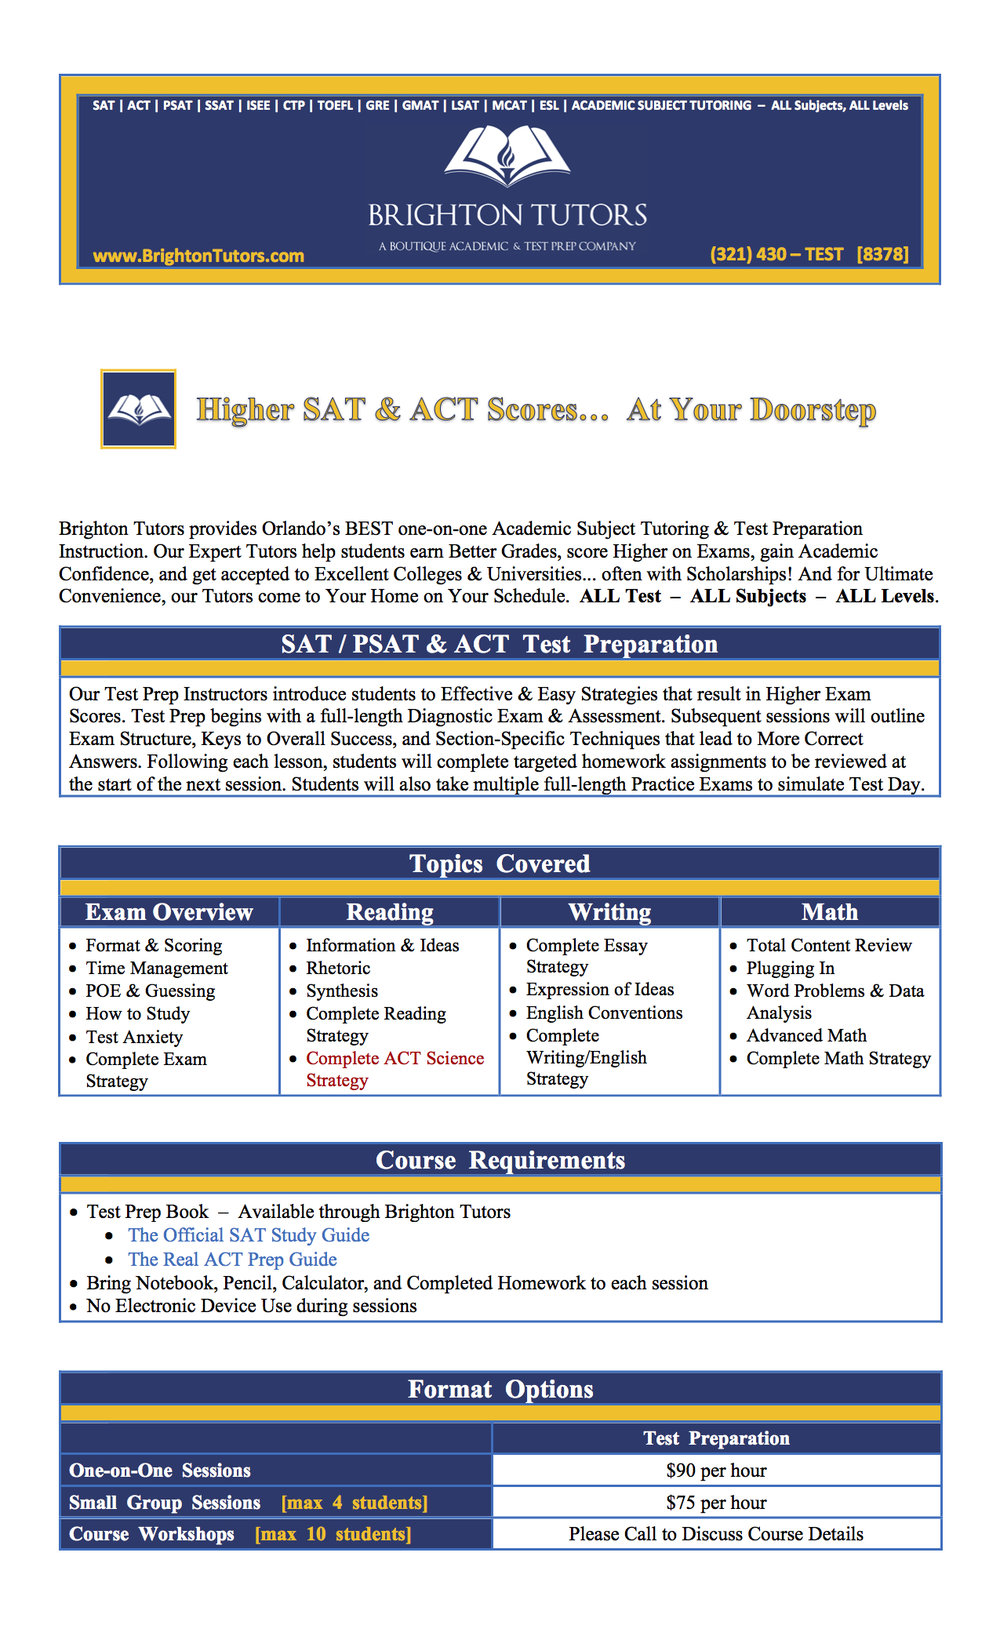 Course Description for Brighton Tutors SAT / PSAT & ACT Test Prep Tutoring: The Best SAT & ACT Test Prep in Orlando, Florida.